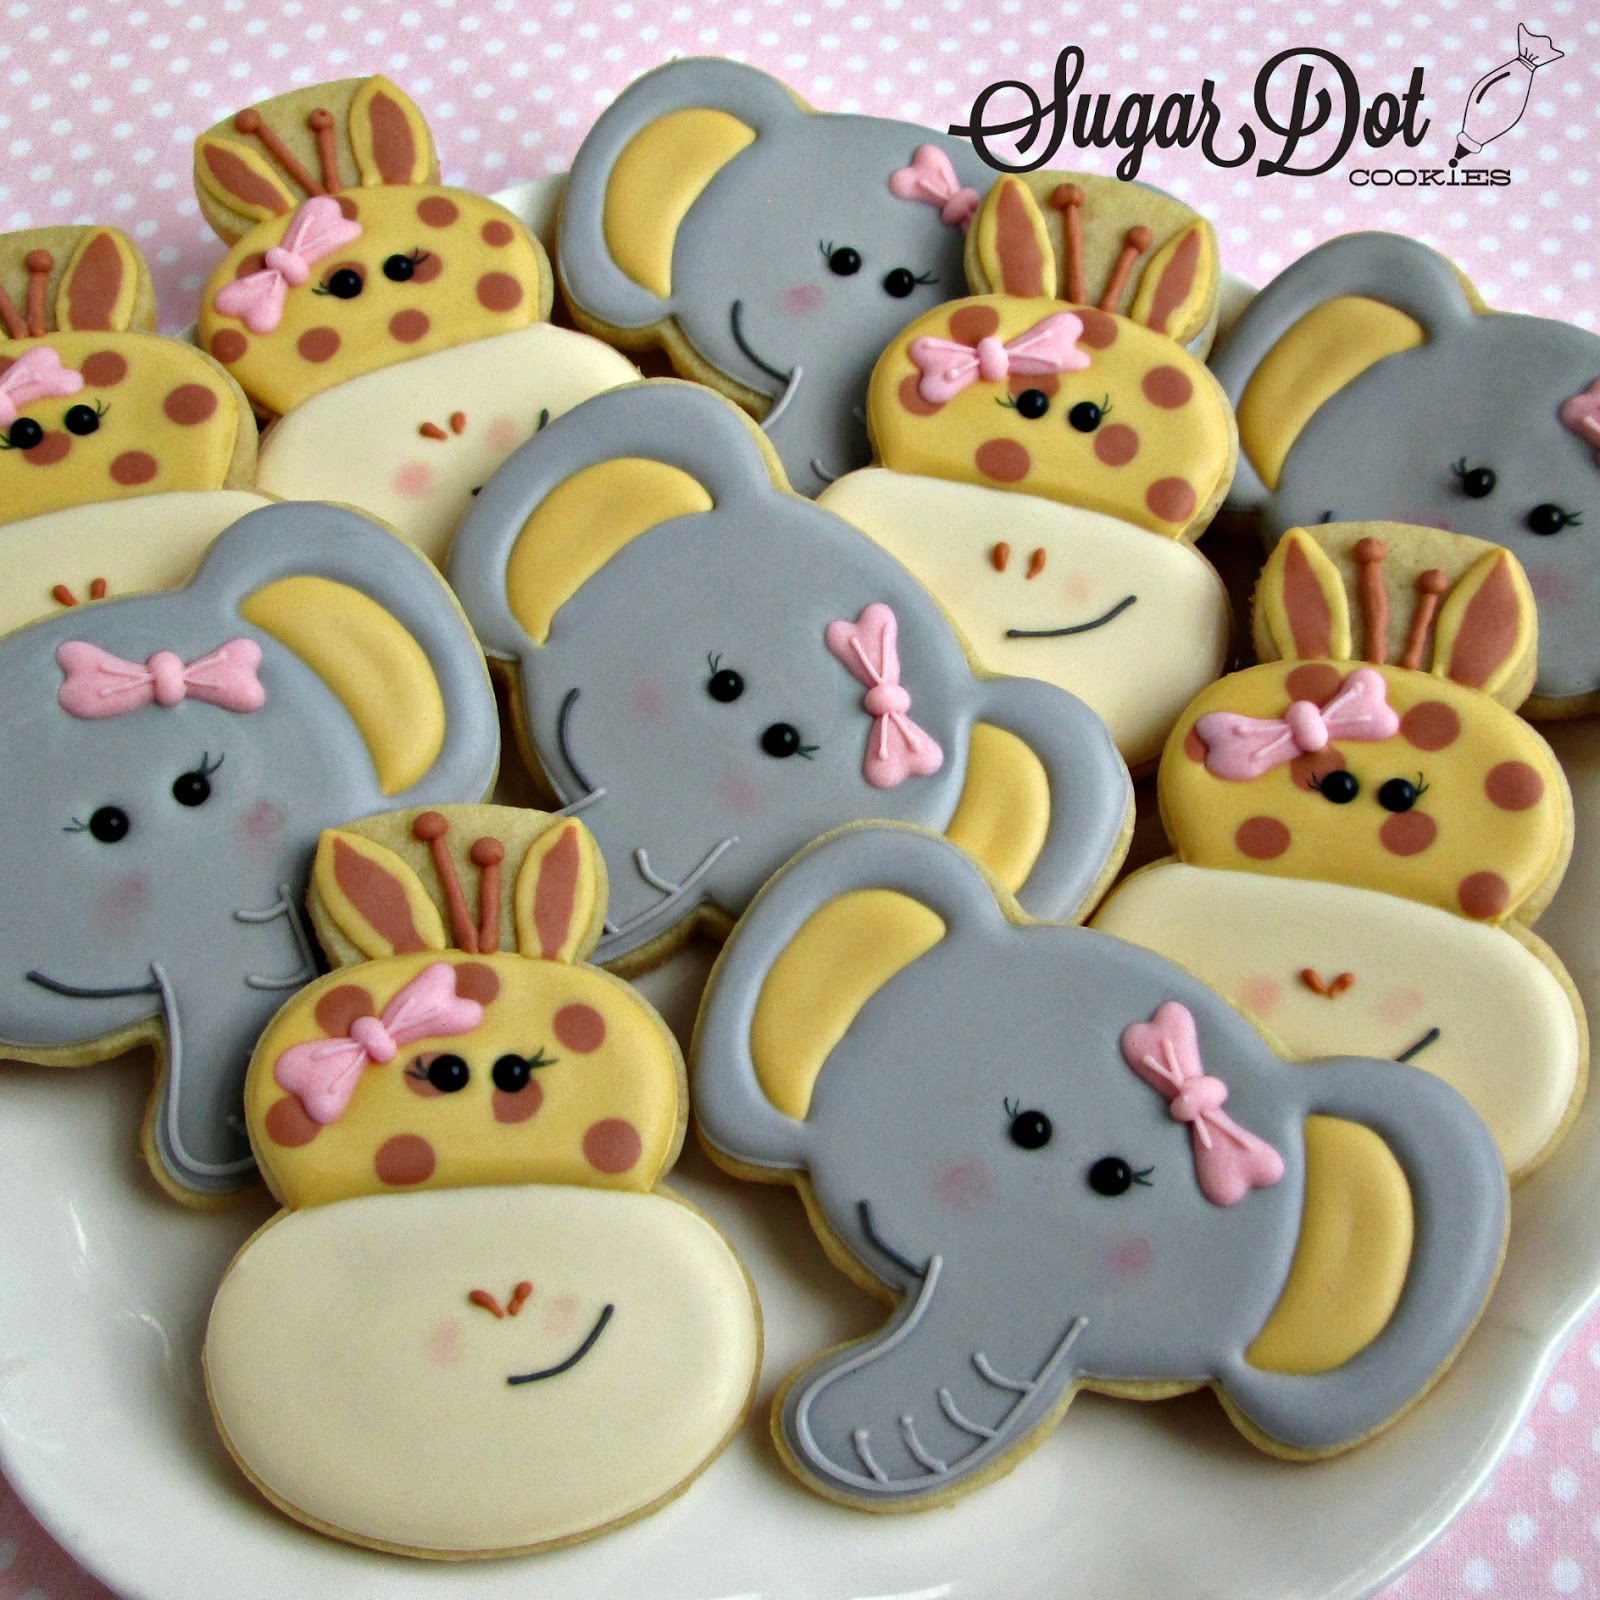 cookies are available for purchase through my website